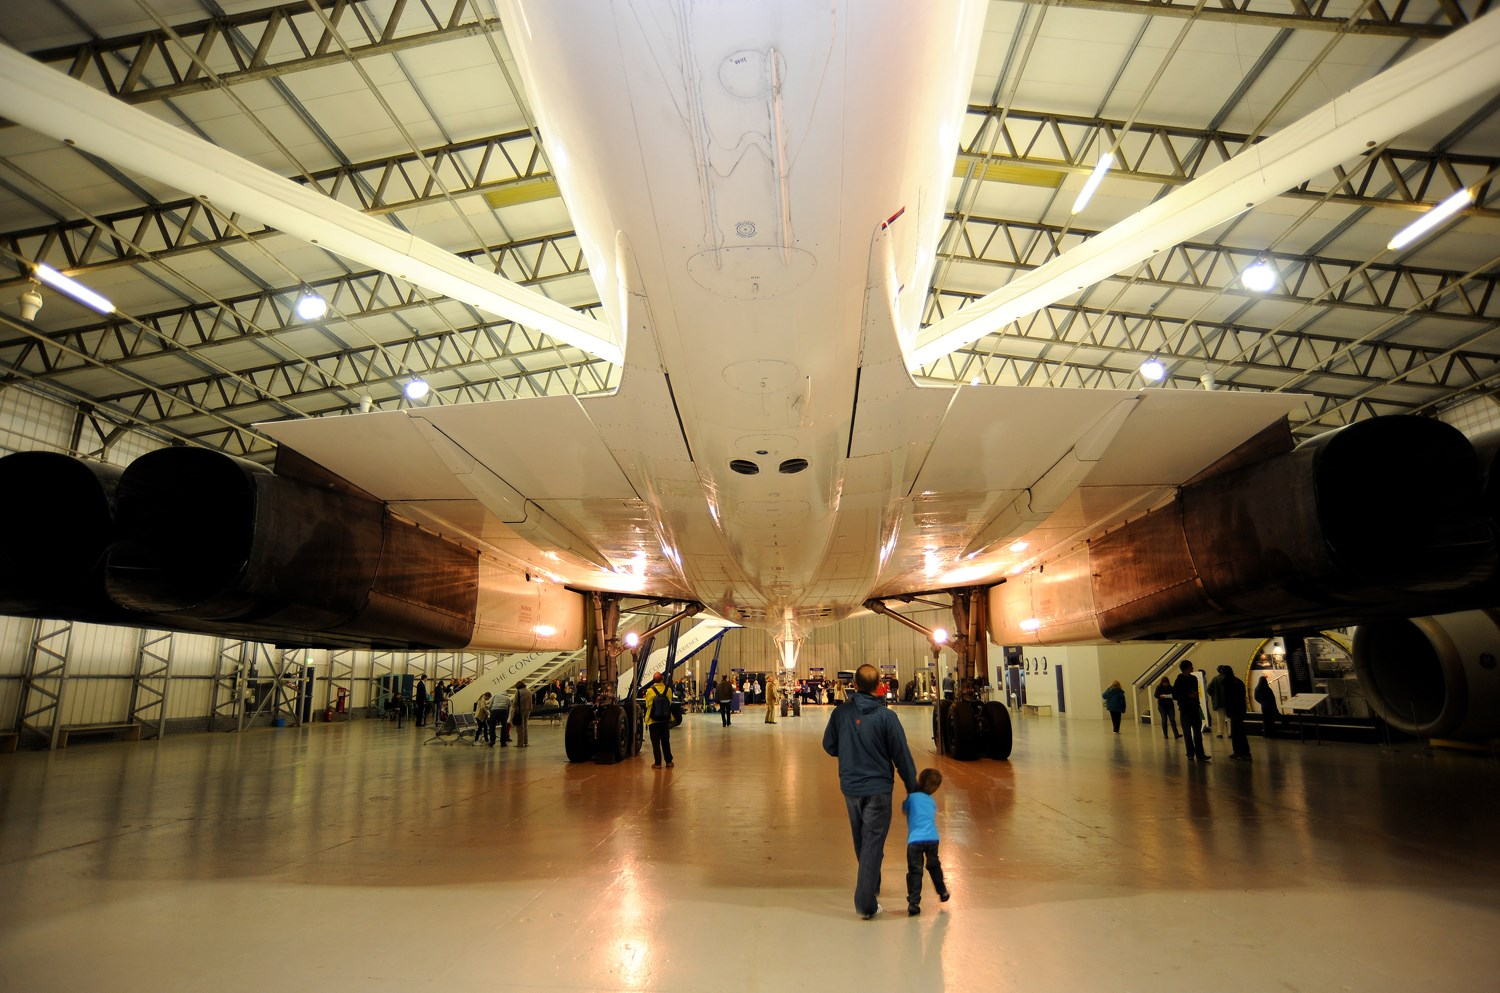 2004 - Scotland's Concorde, G-B0AA, was transported 385 miles over ground from Heathrow to the National Museum of Flight. Based at East Fortune airfield, which played major roles in both WWI and WWII, this is one of the most significant aviation museums in Europe. The American Foundation was pleased to contribute to the movement of this historical plane to its new home, where it has been enjoyed by visitors since. This year also saw the launch of the National Museums Scotland Masterplan – an ambitious project to restore the true beauty of the original National Museum of Scotland building and reveal treasures of international importance.